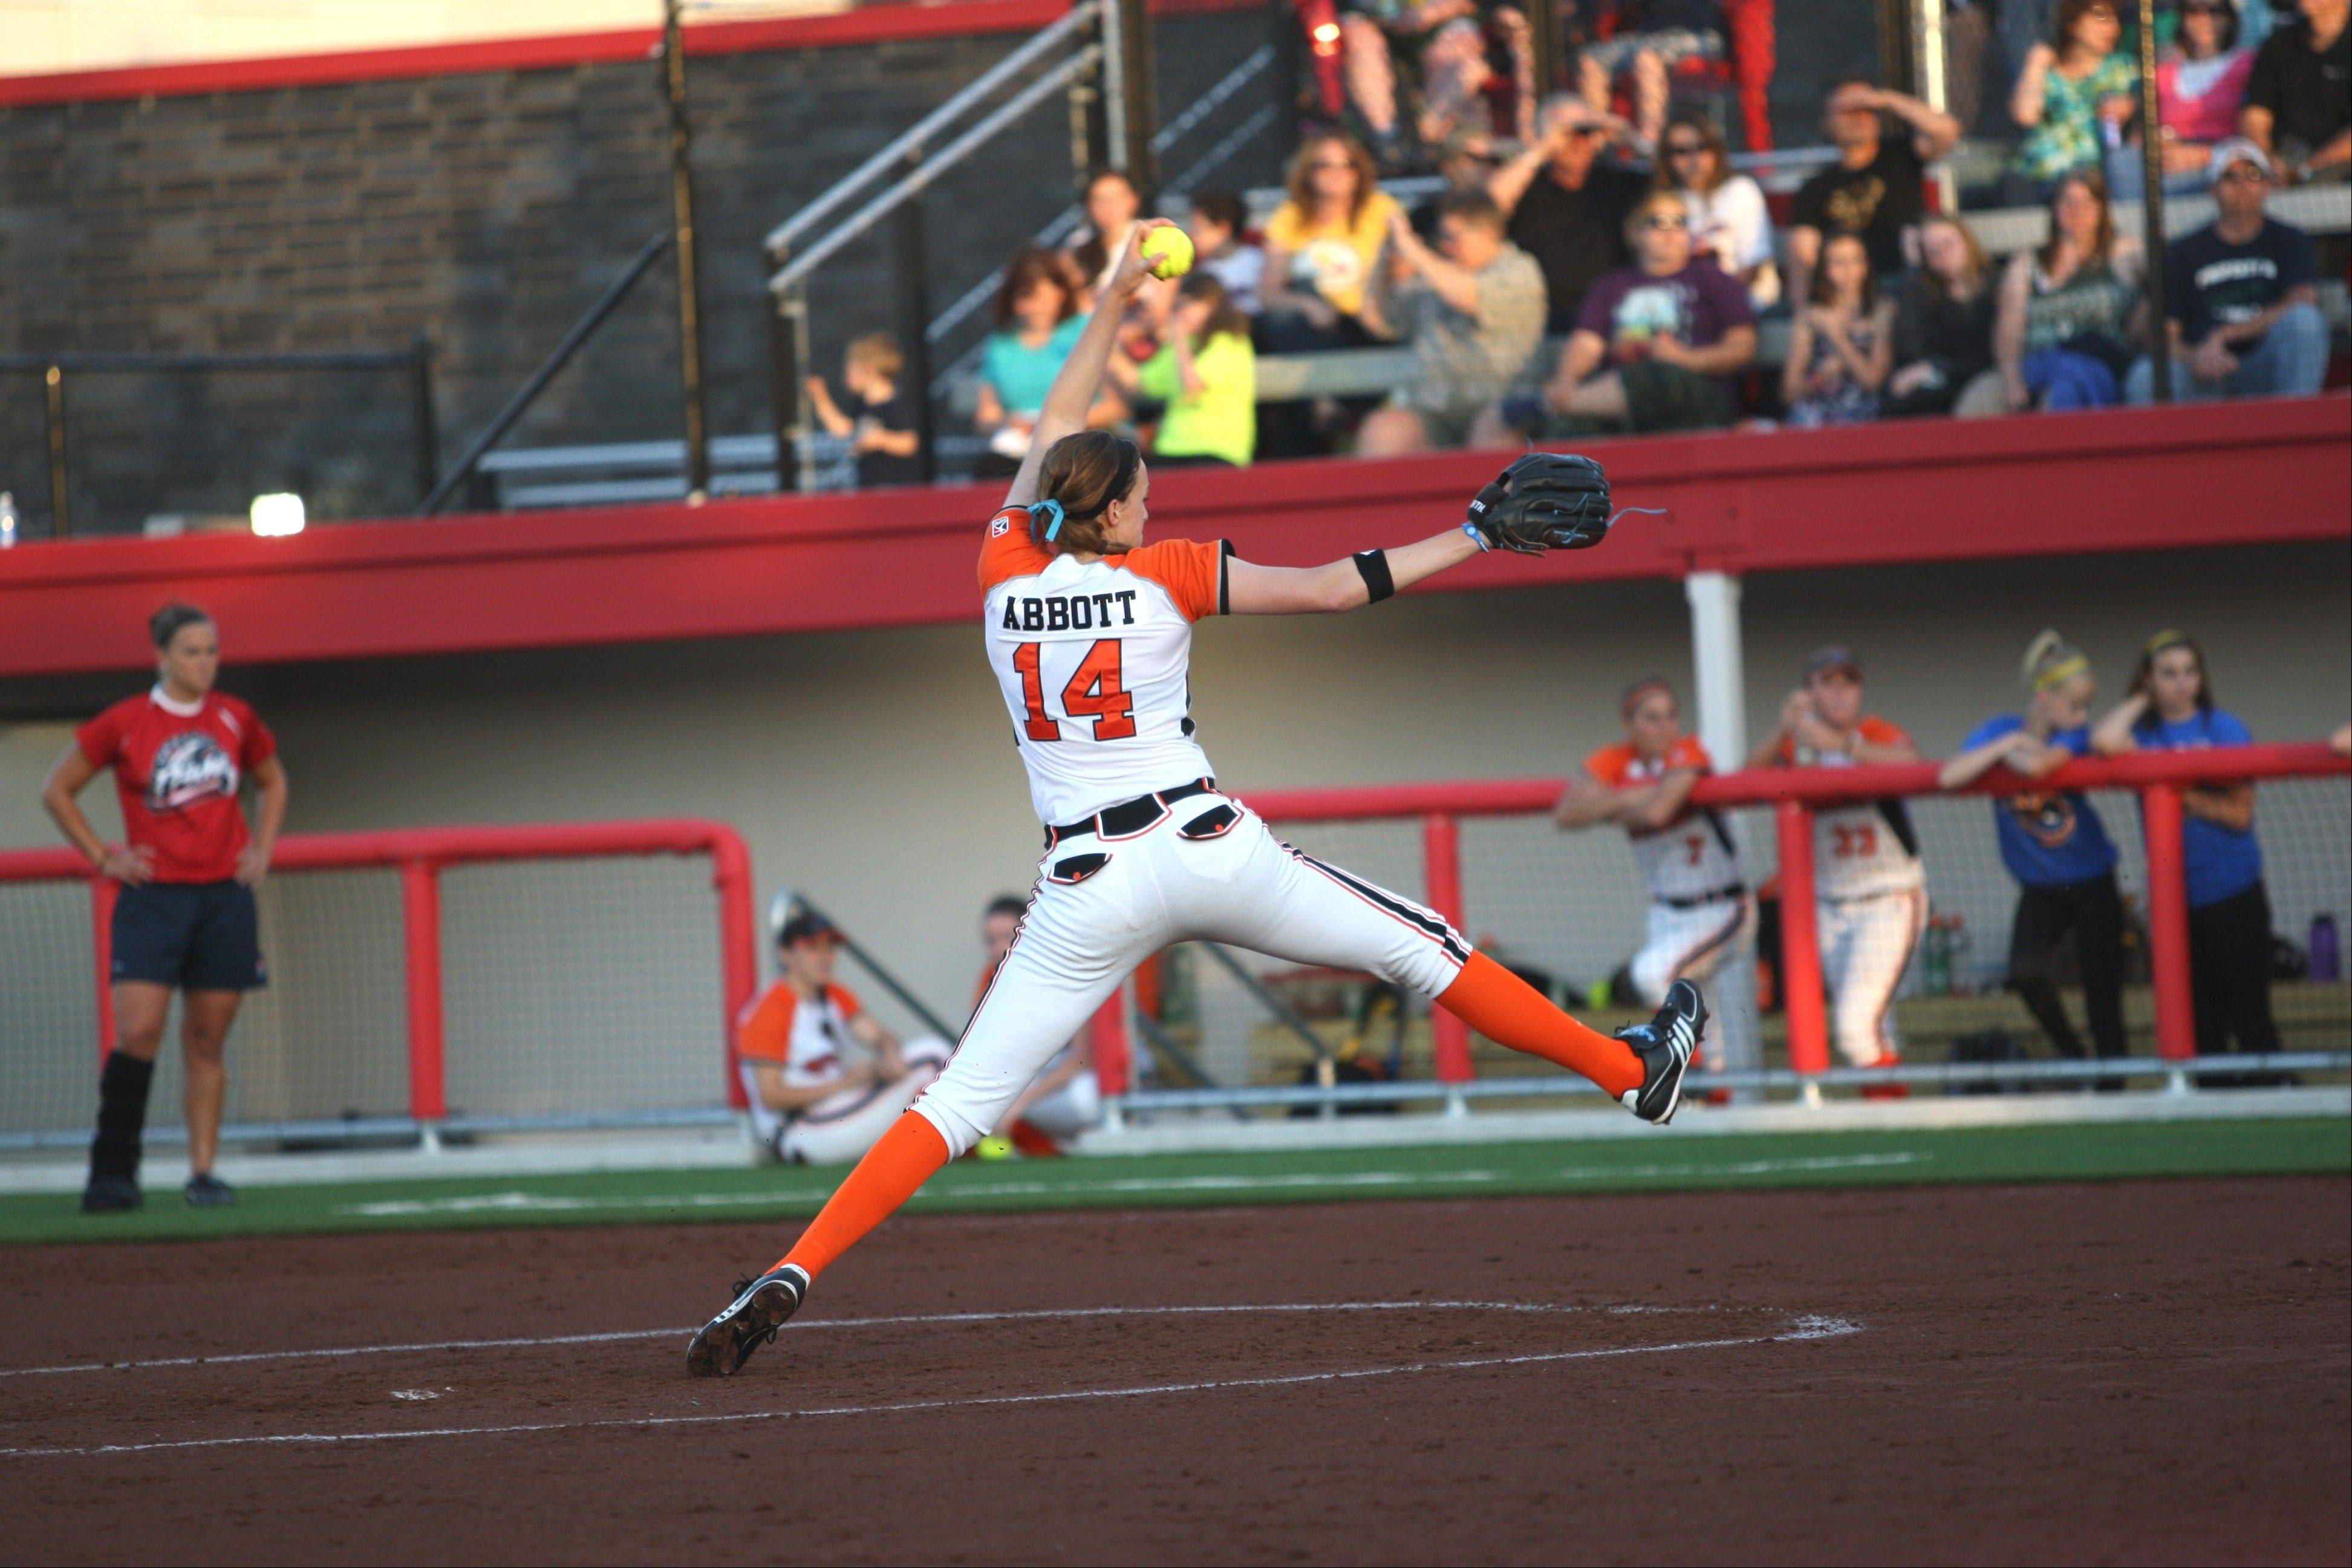 This season Chicago Bandits pitcher Monica Abbott will be reunited with her former high school coach on the Bandits. The defending NPF champs open the regular season with a four-game homestand starting Thursday at The Ballpark at Rosemont.